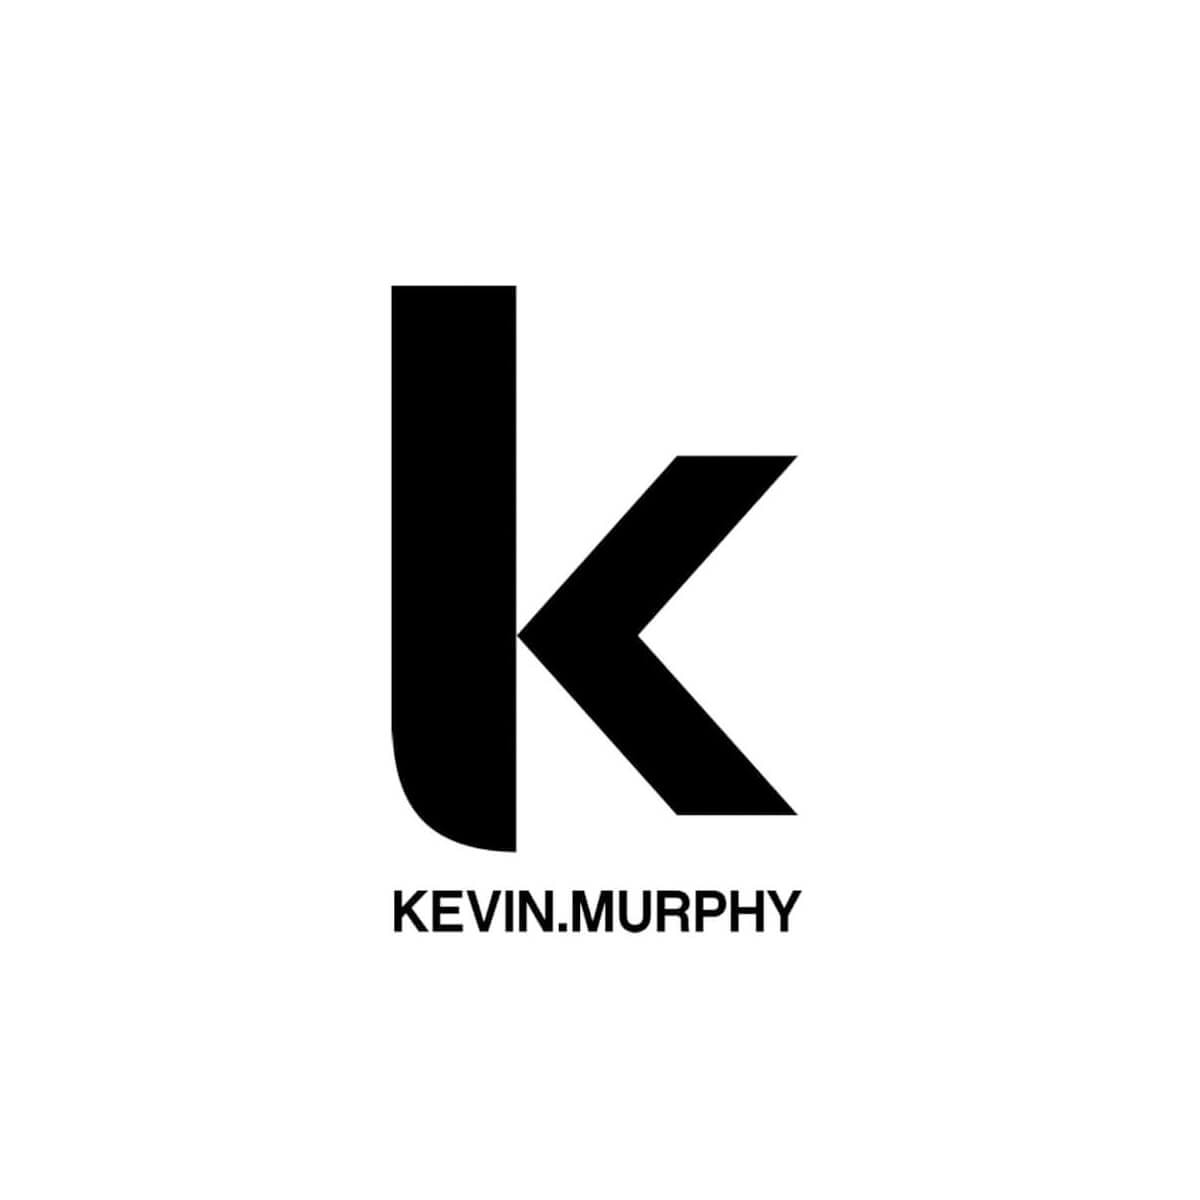 Hair Product Kevin Murphy logo